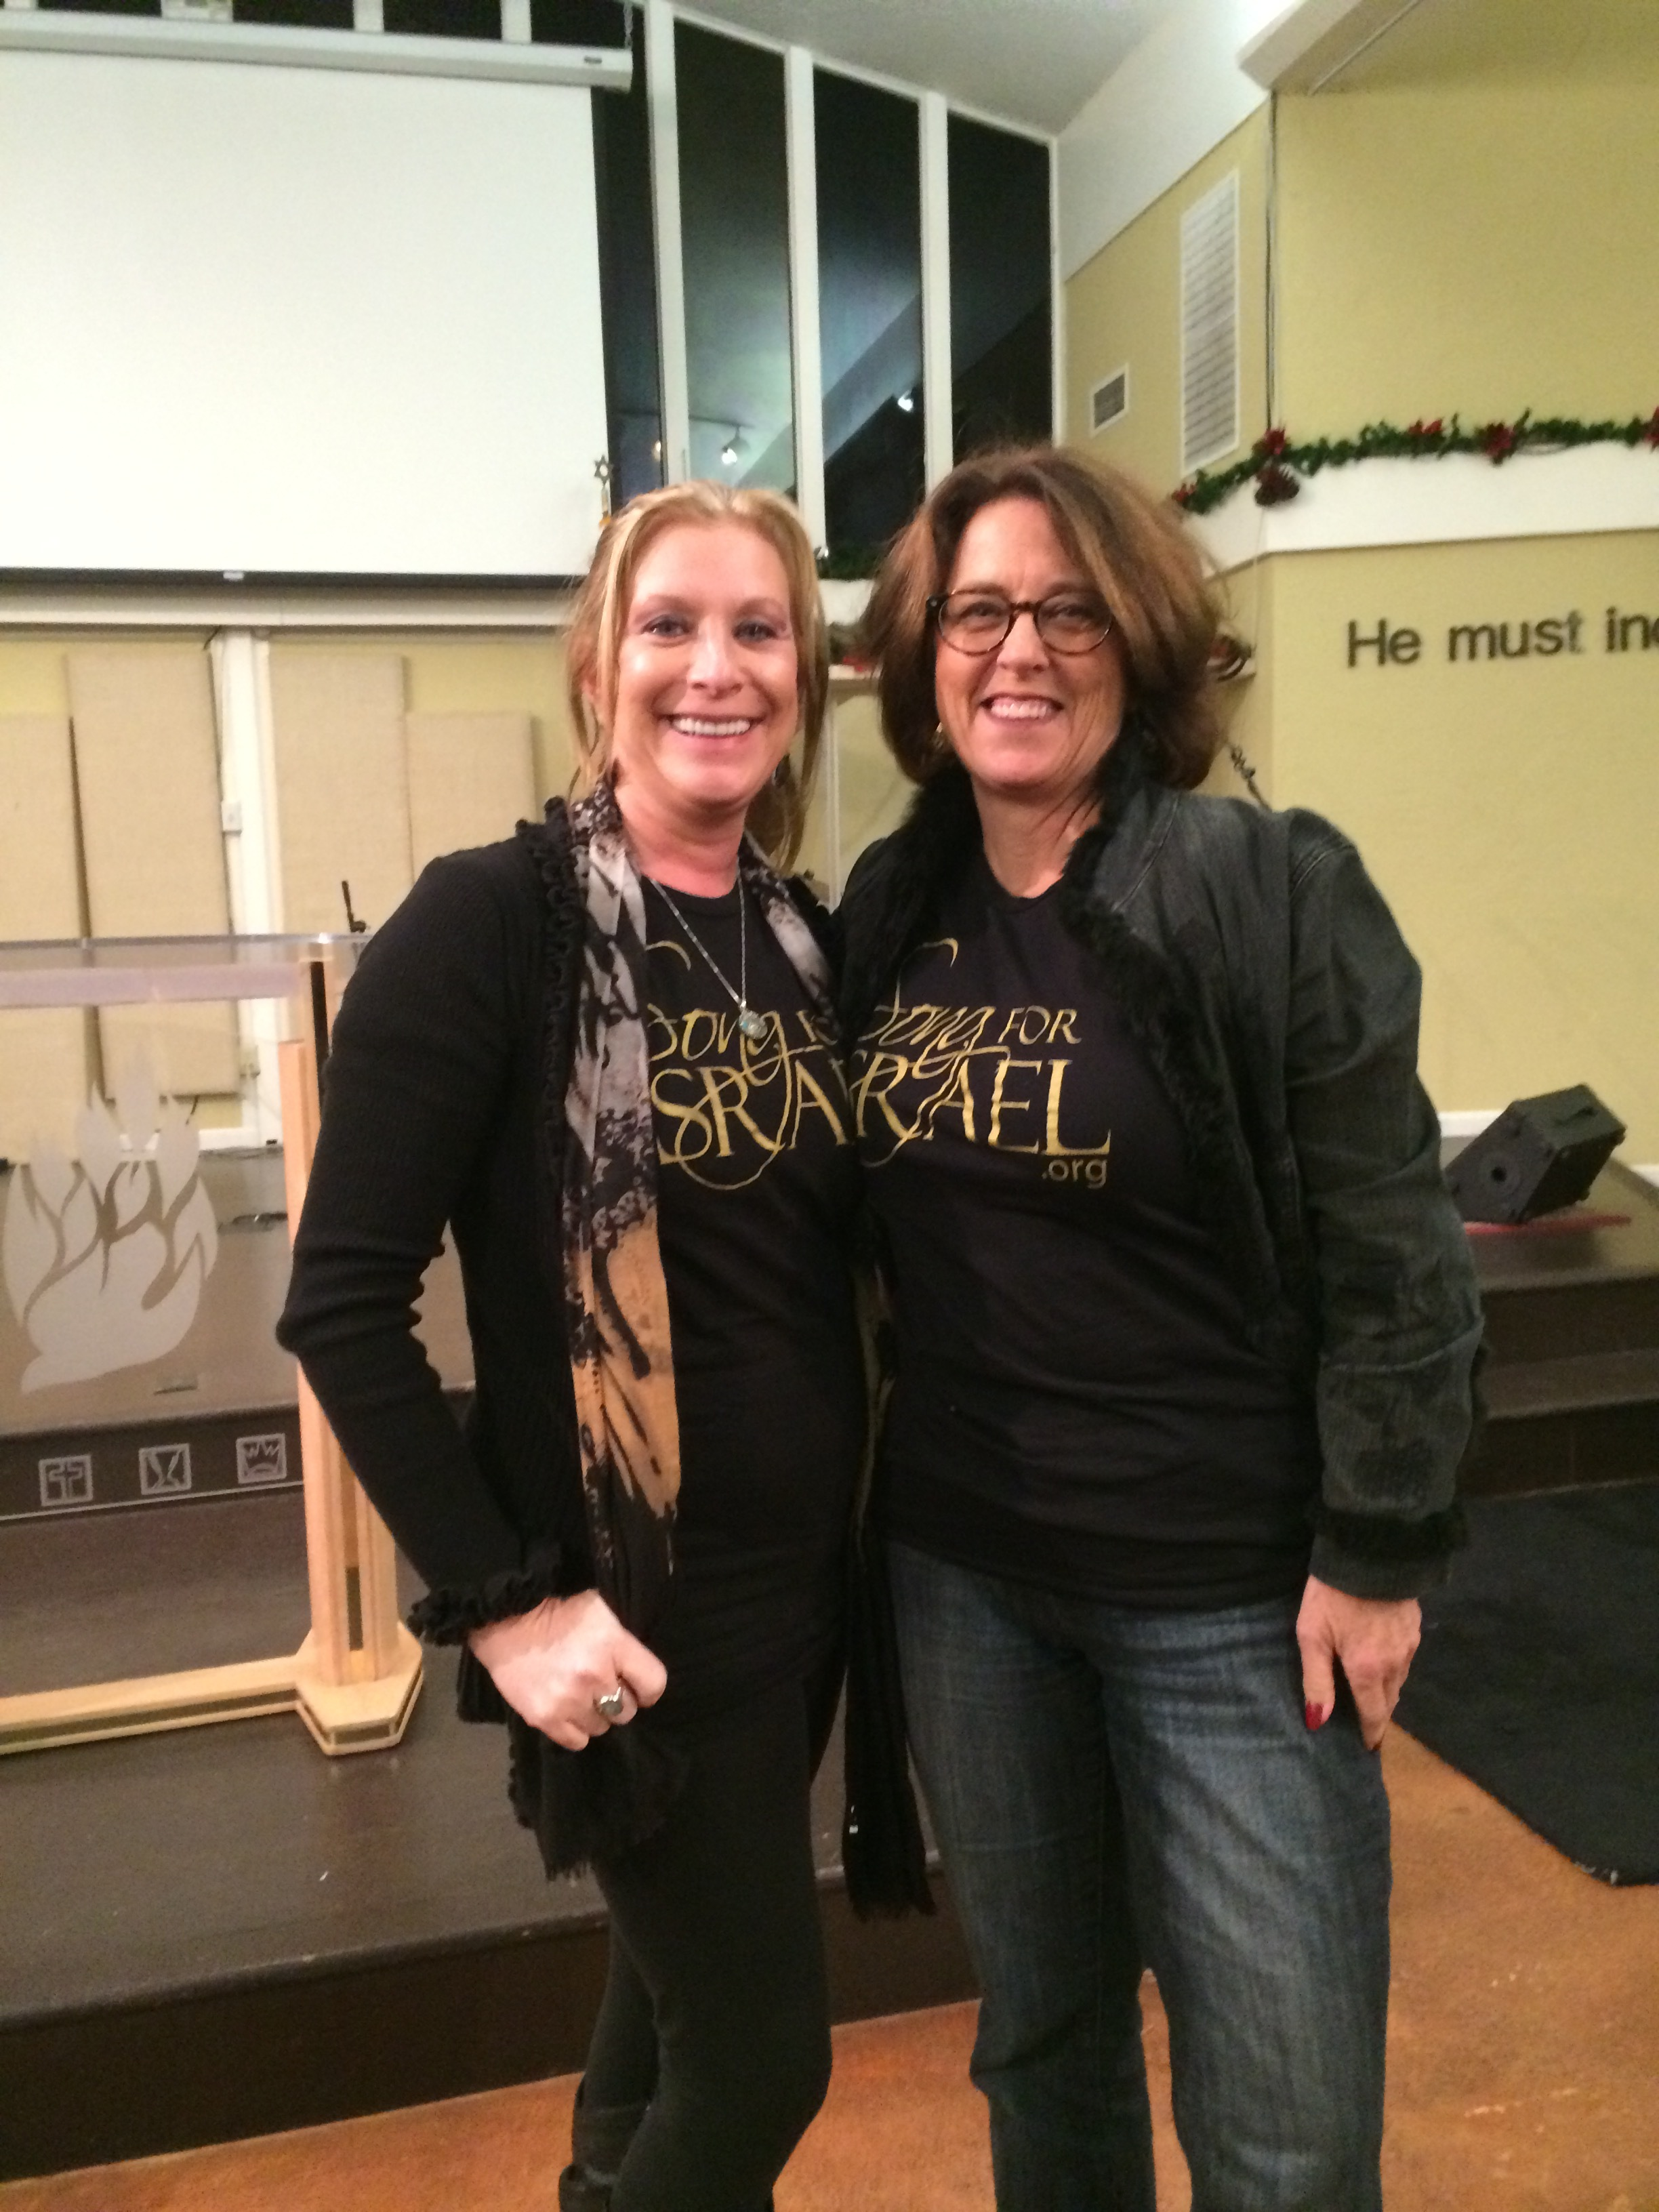 Special event with Sally Shiff at Ben David Messianice Jewish Congregation 2015